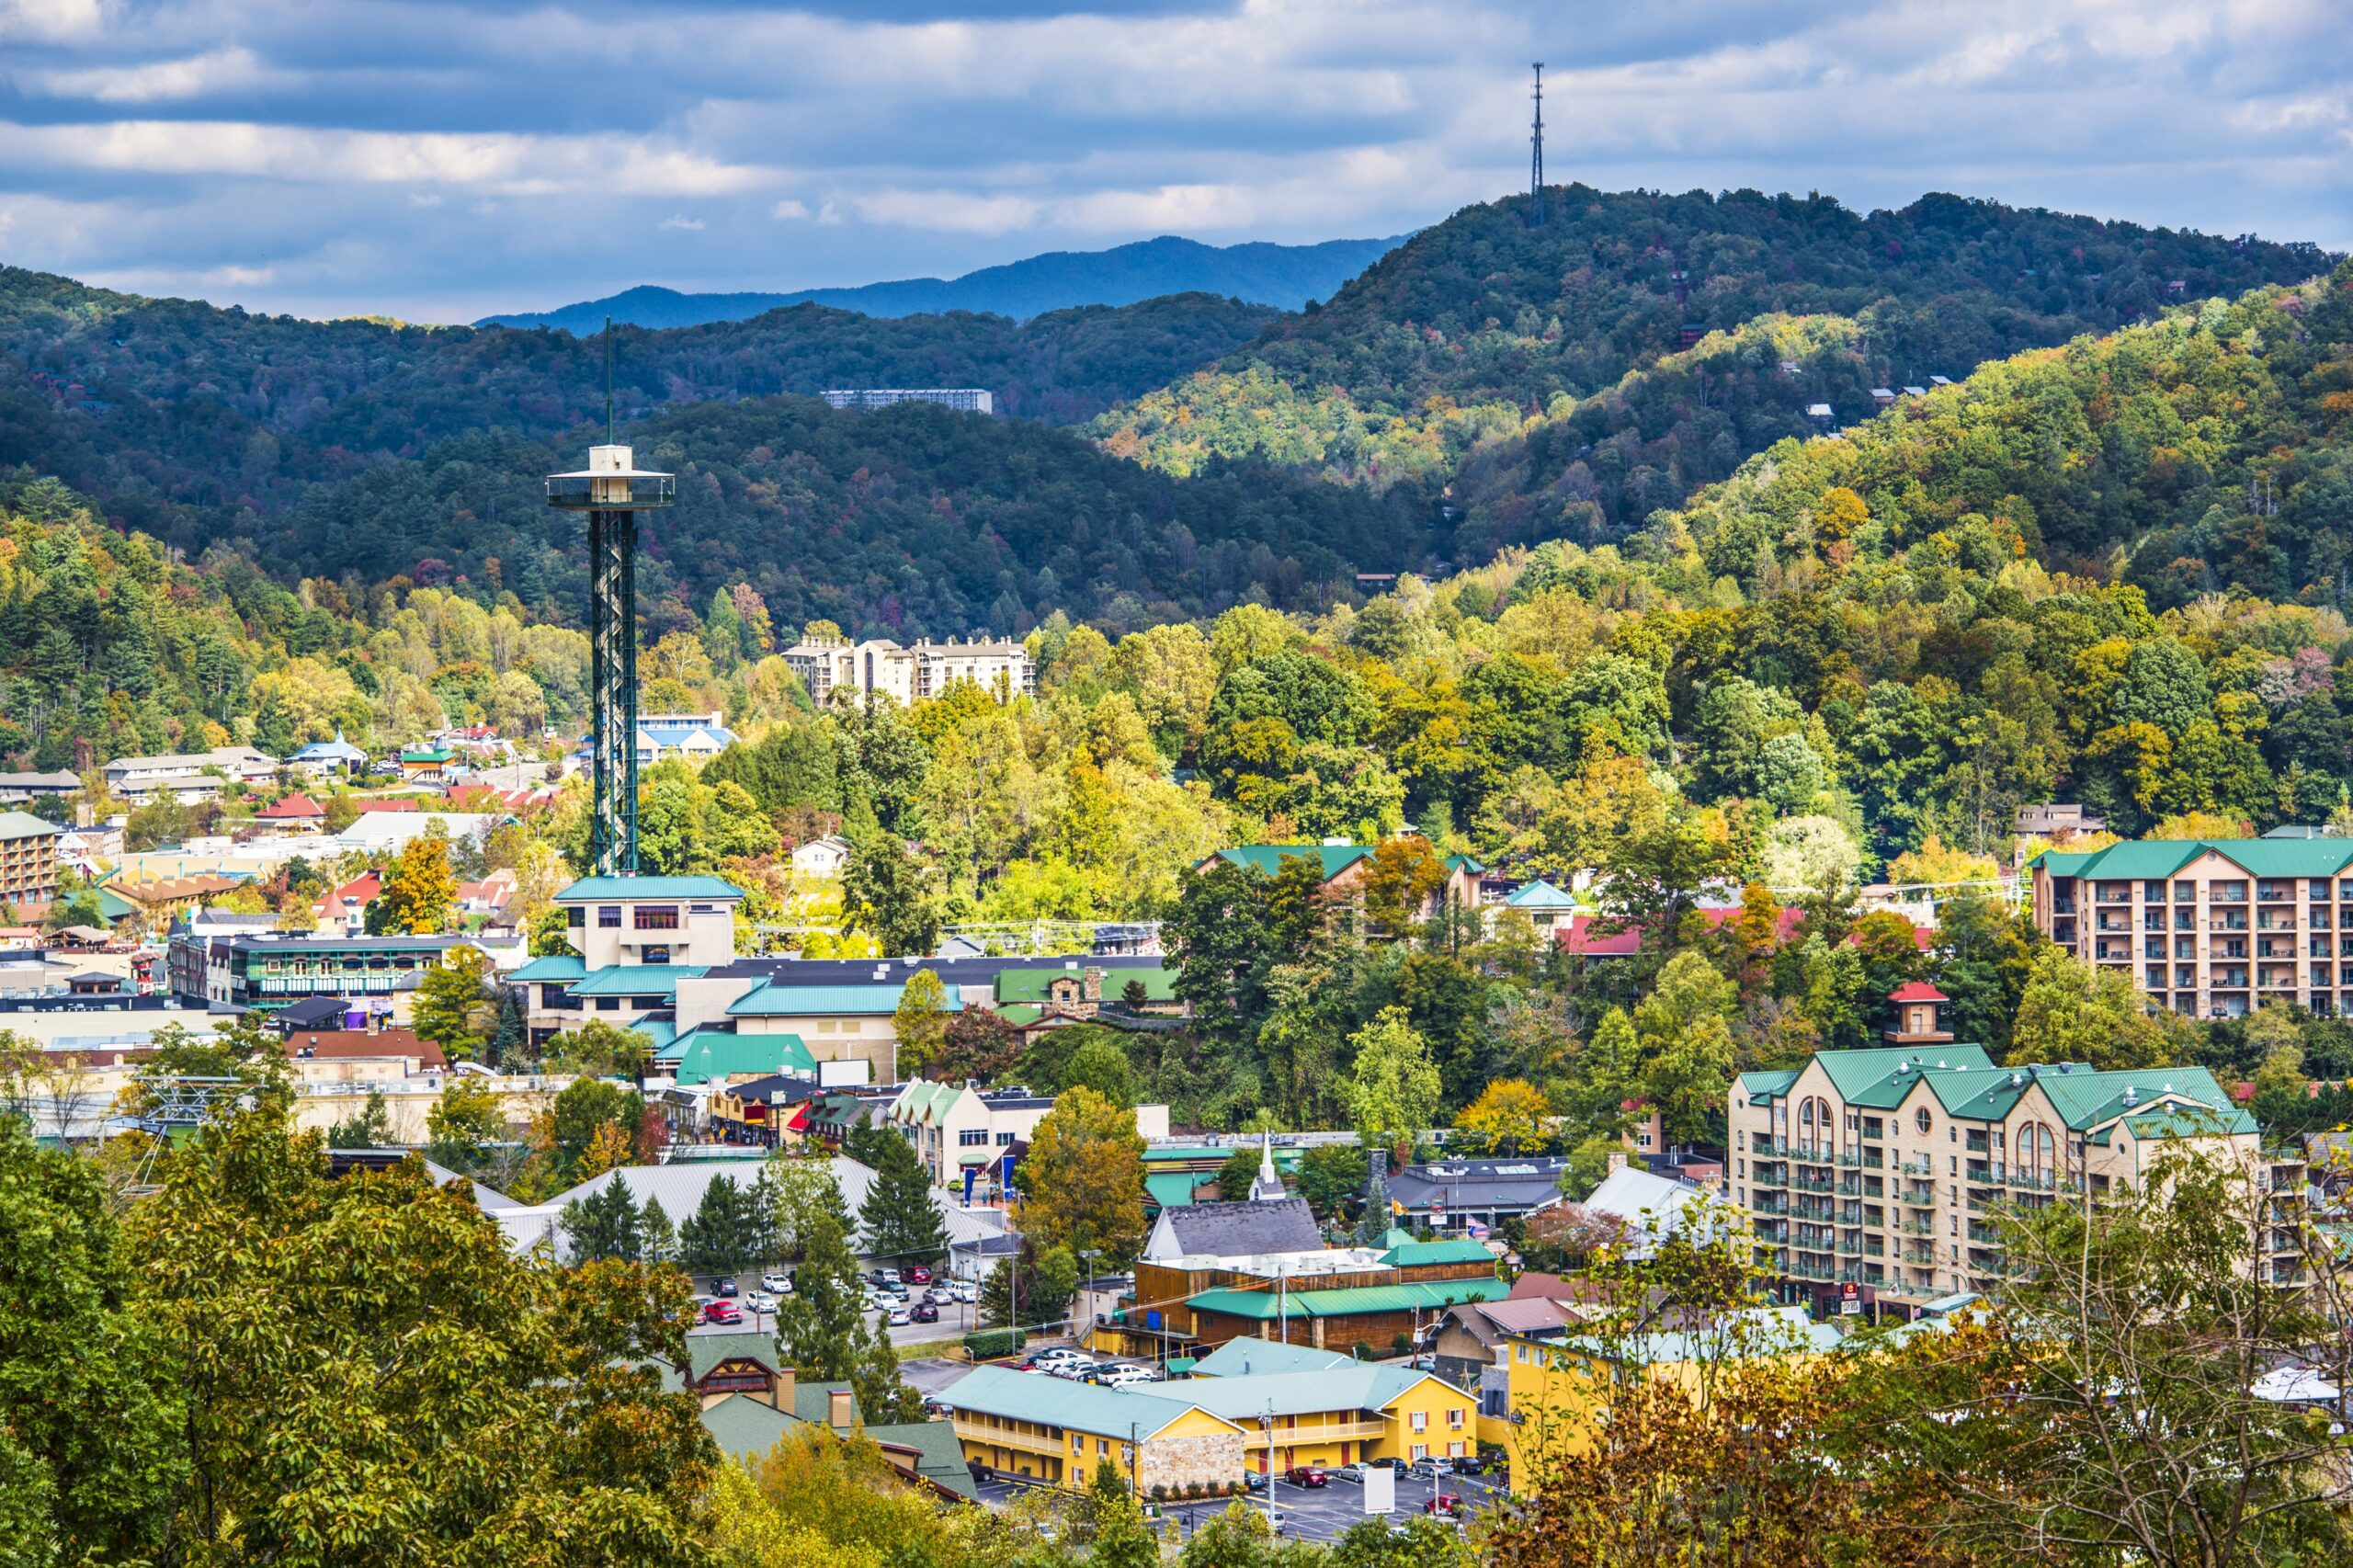 An aerial view of the Gatlinburg Space needle and the surrounding landscape.